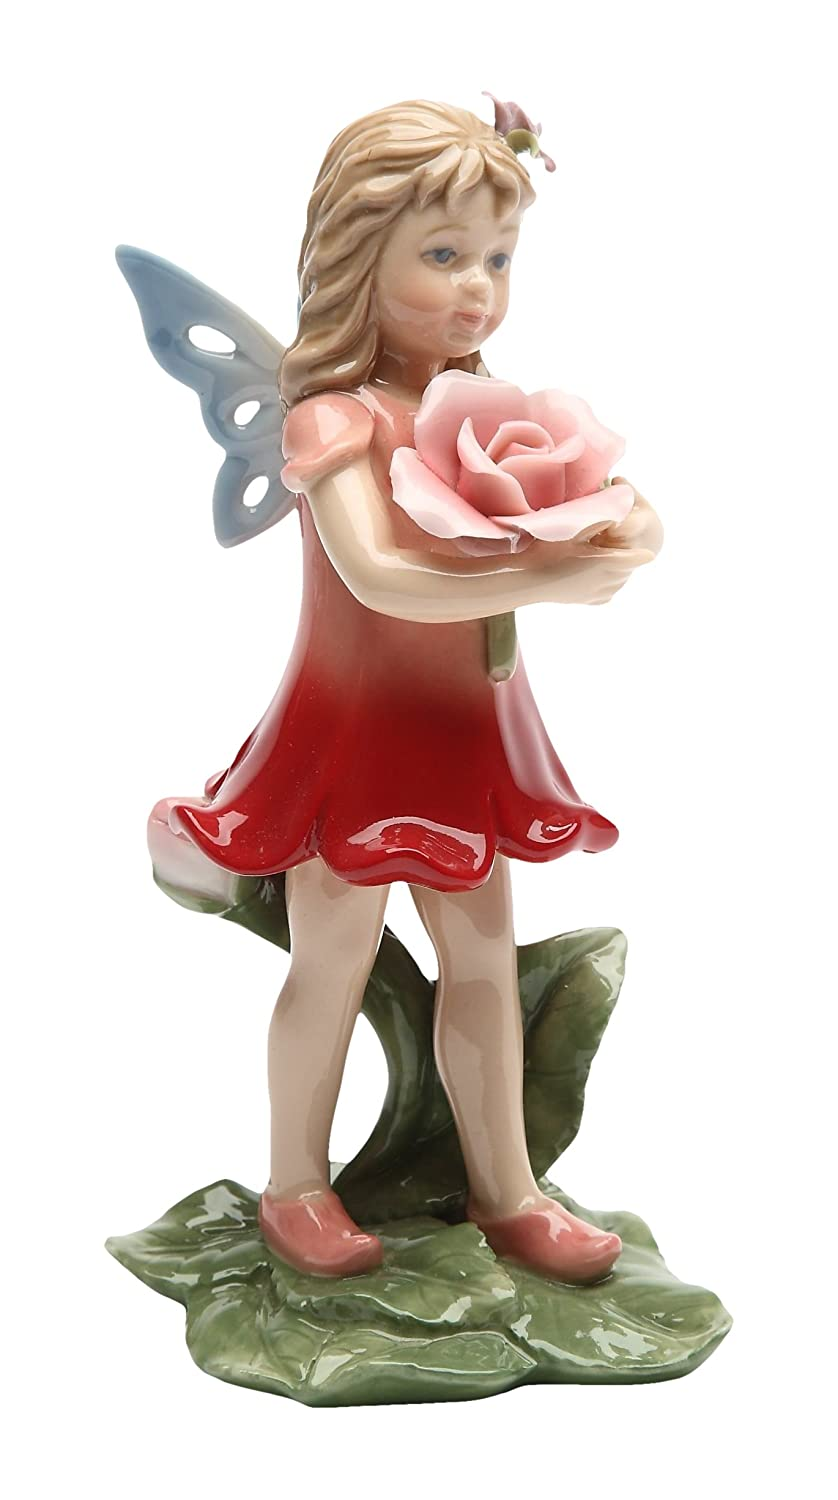 5.63 Inch Painted Fairy in Red Dress with Roses on Leaves Figurine StealStreet SS-CG-20822